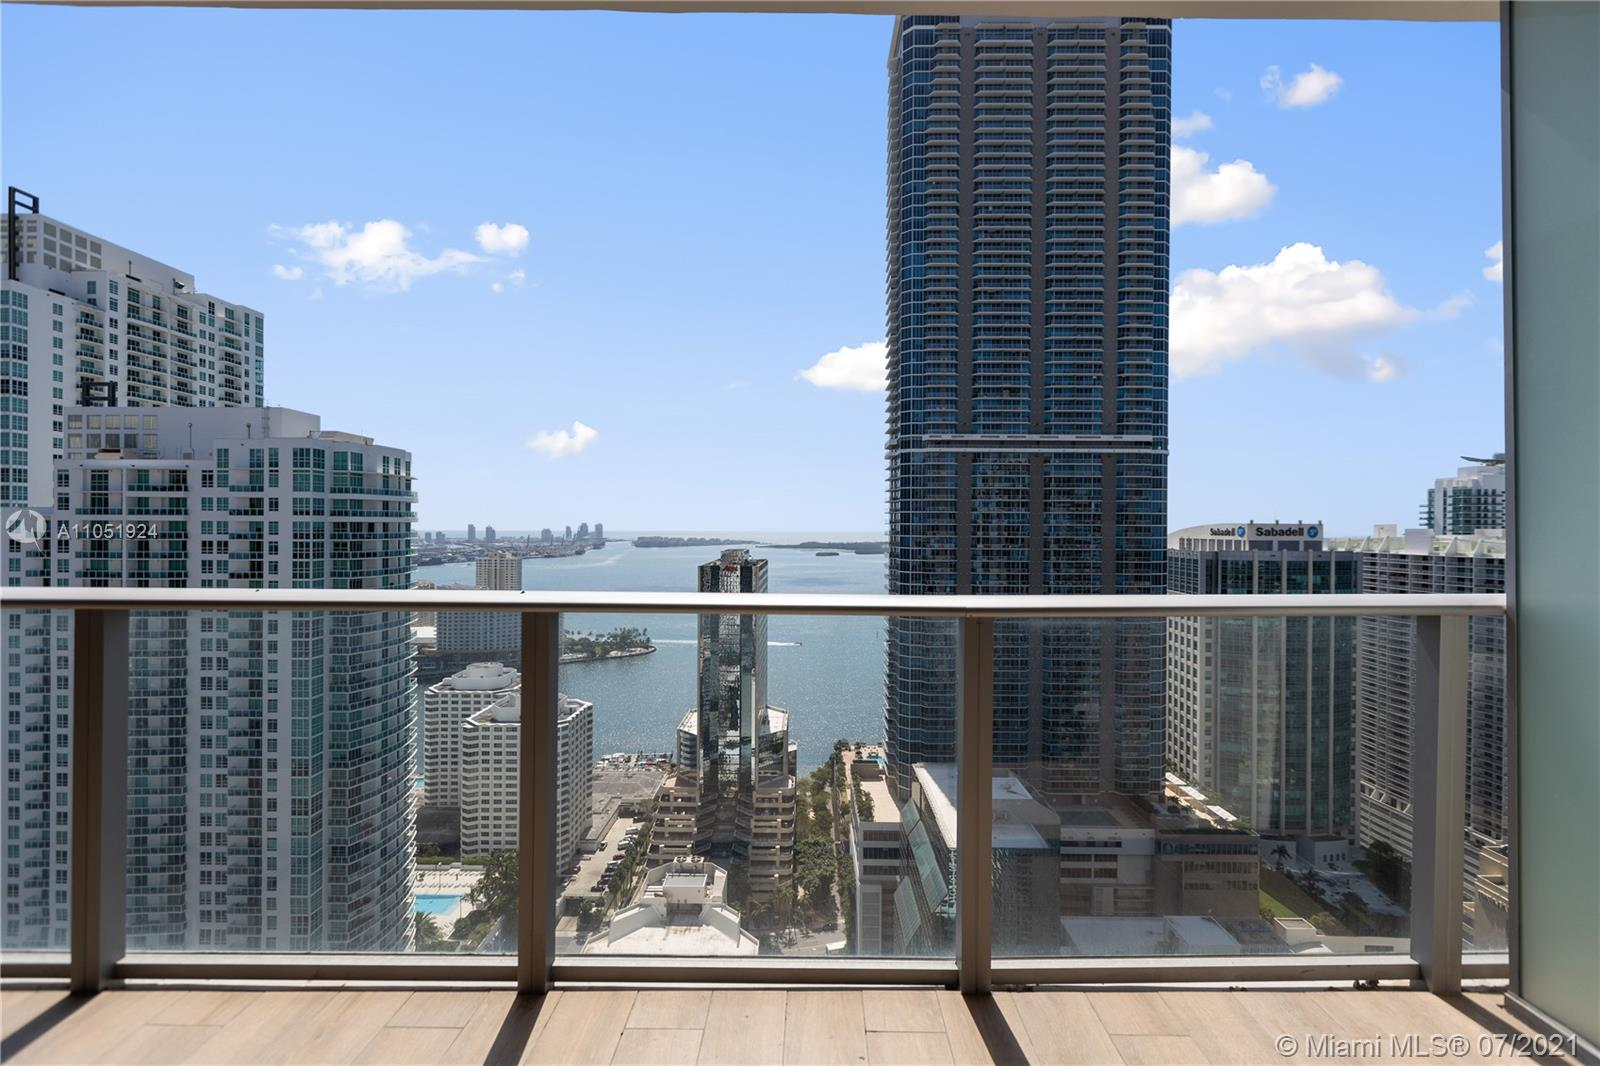 Incredible unit on the 41 floor. Spectacular view of the Ocean & Miami city skyline. 2 bedroom, 3 full bathroom, plus Den with full bathroom, to use as a 3rd guest bedroom or kids room. Private elevator opens directly to the unit. Second bedroom can be used as bedroom or as an office too. Top of the line kitchen & appliances. Over 50k on upgrades such as porcelain floors, spacious kitchen, shades & more. Building is famous for 2-level activity center of superior amenities, rooftop & indoor pools with bar/grill, spa, fitness center, running track, indoor basketball & squash court, kids water park, bowling alley, E-Golf and much more! Interior staging project included with optional shoppable furniture moodboard.